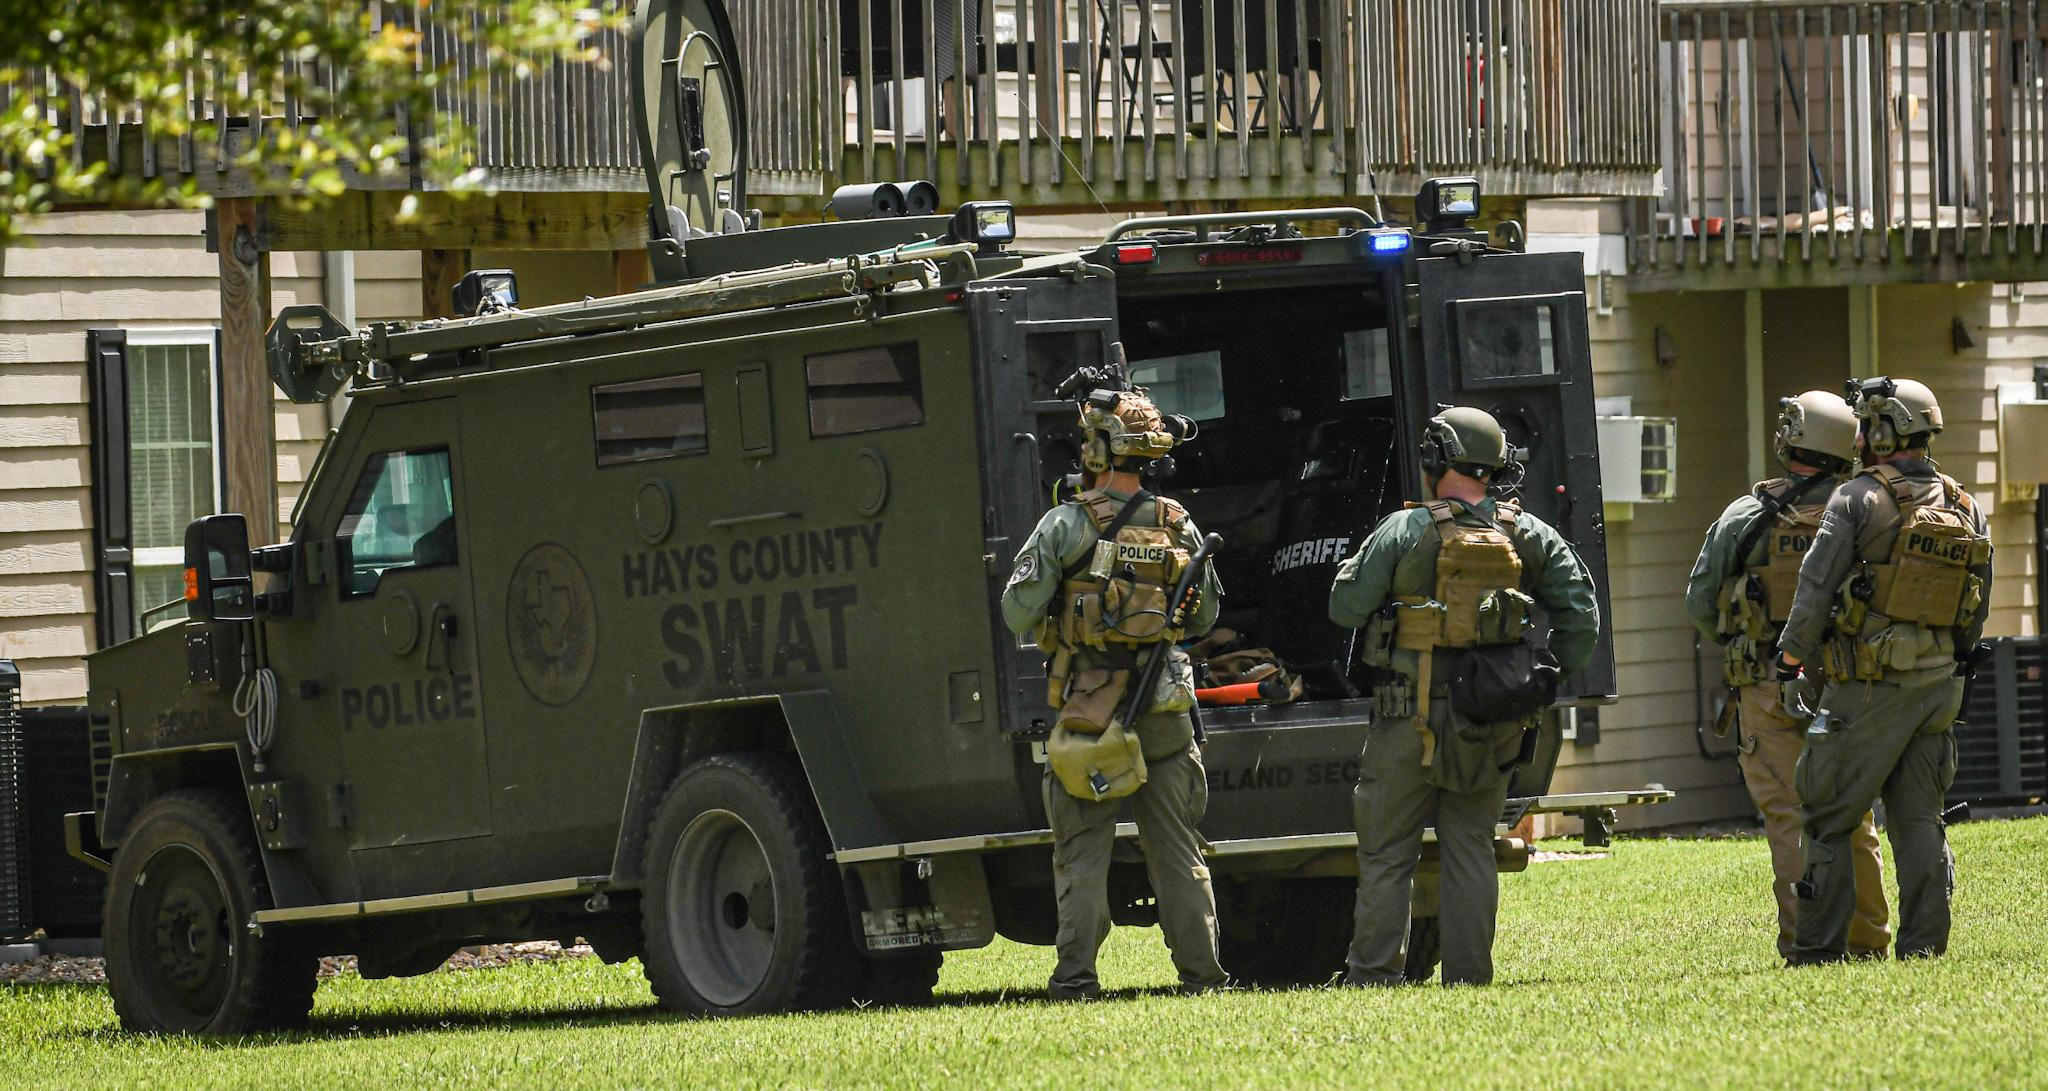 Police arrest man in Friday SWAT incident after he barricaded himself in apartment